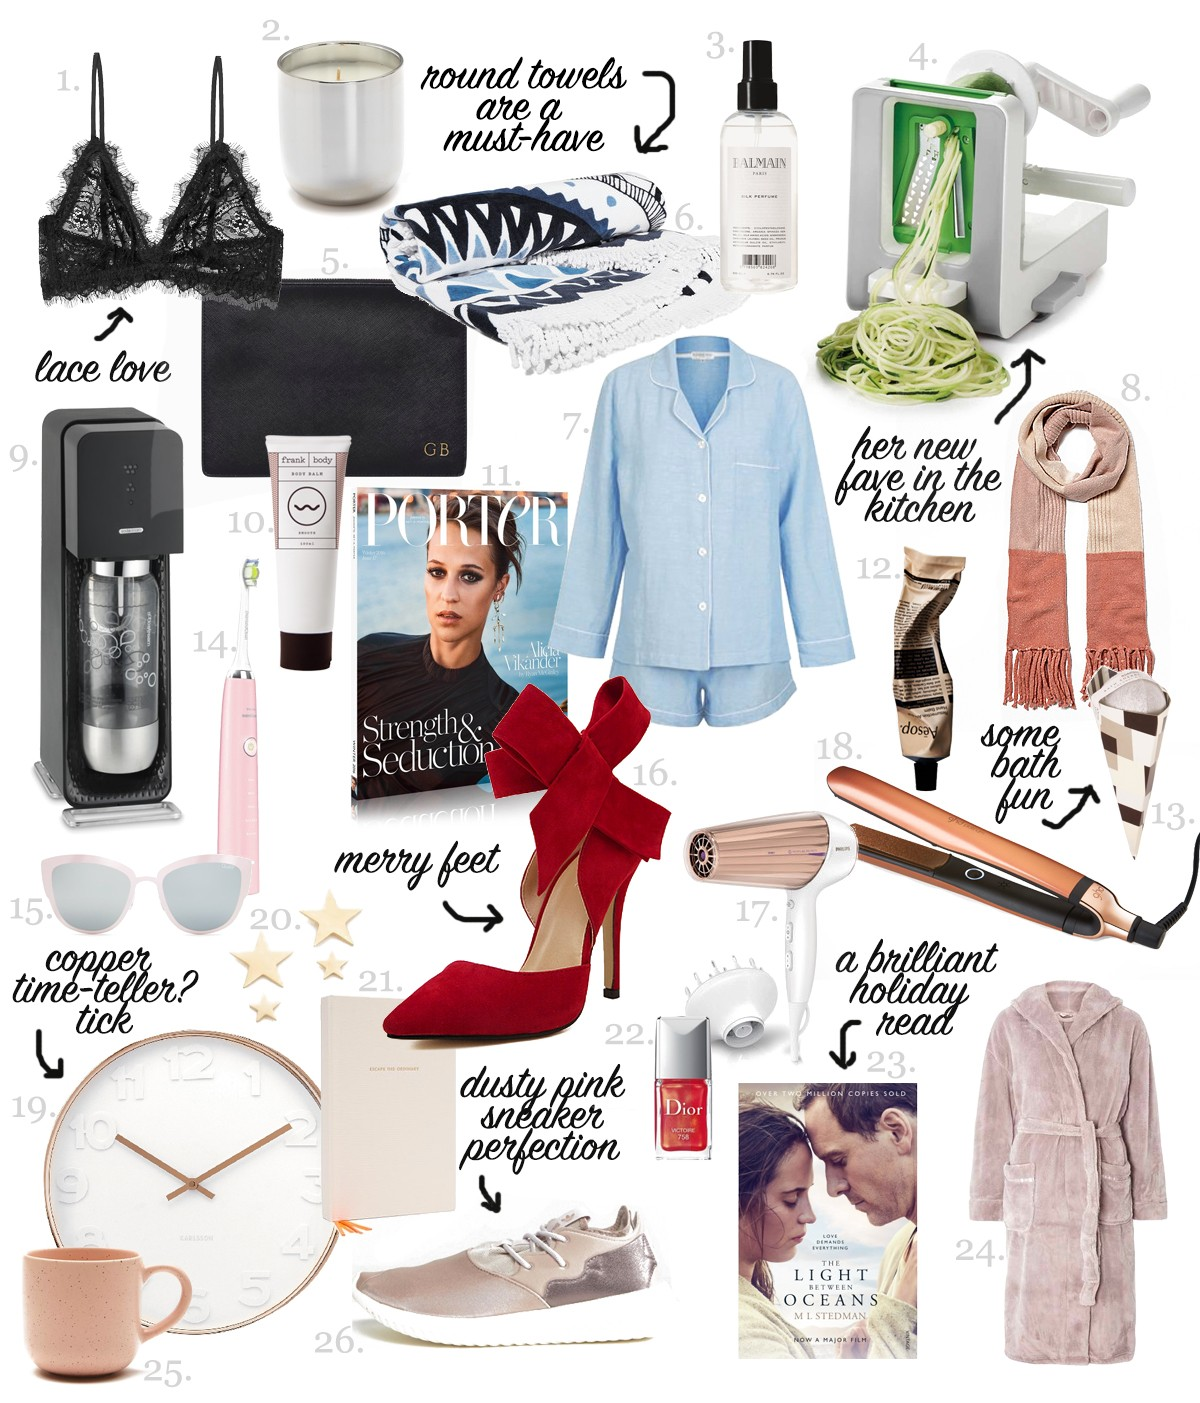 Gifts For Her For Christmas: 26 GIFT IDEAS FOR HER THIS HOLIDAY SEASON